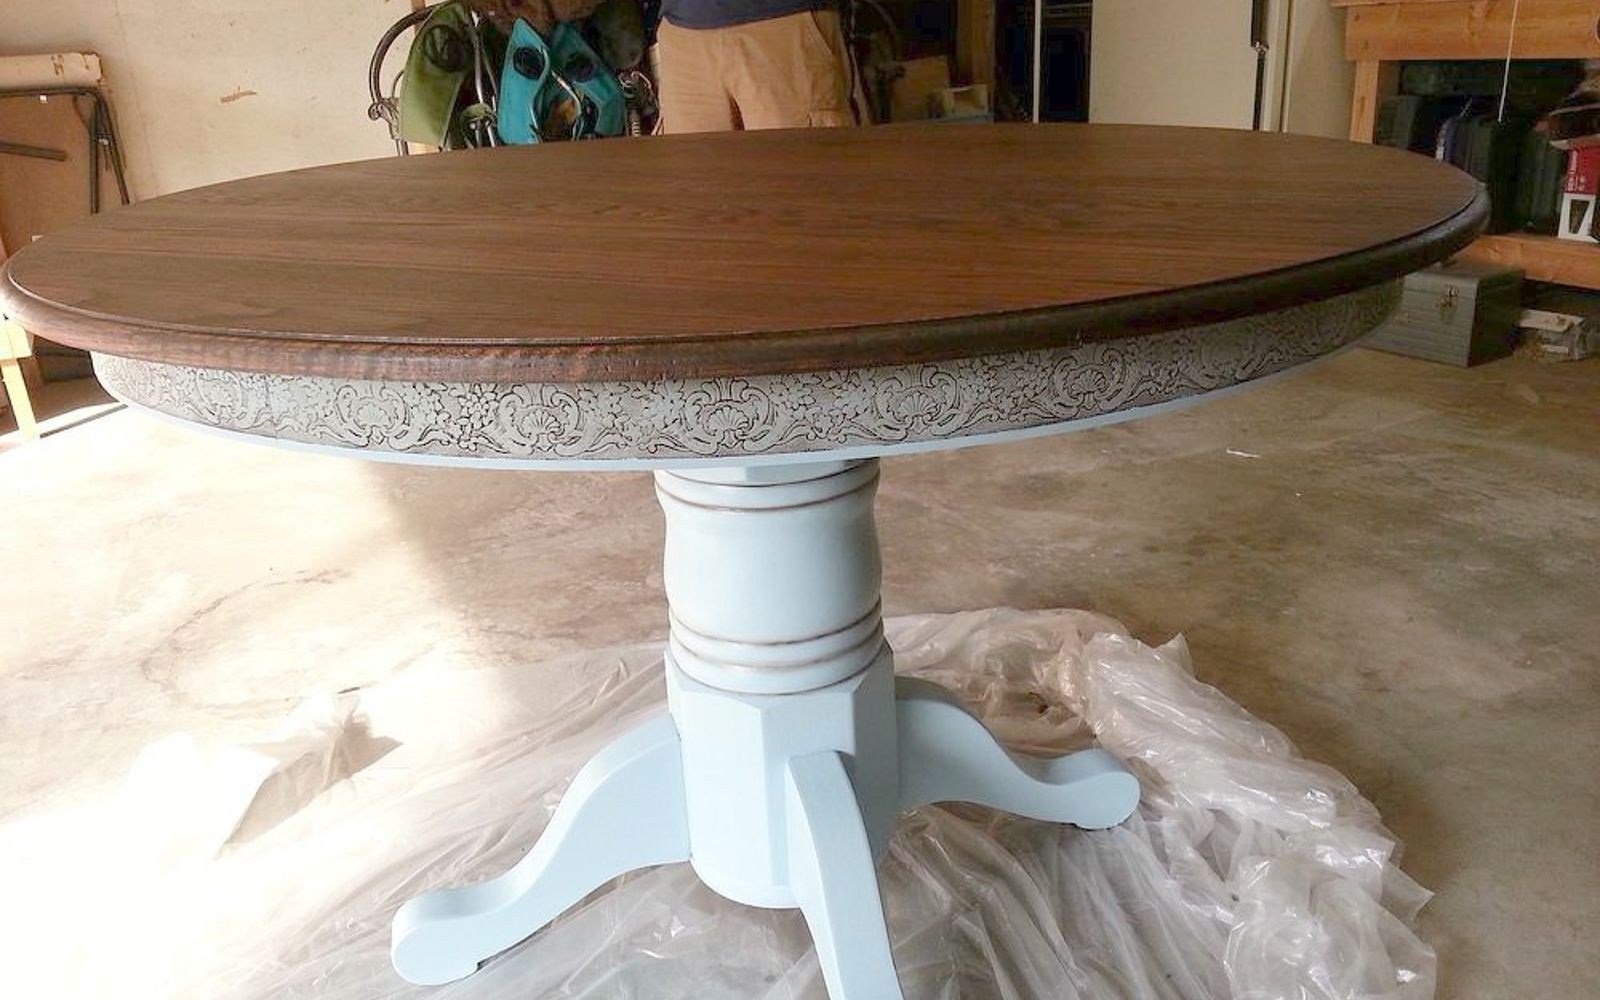 s 13 gorgeous ways to bring your worn kitchen table back to life, kitchen design, painted furniture, Use dark wax to bring out hidden details